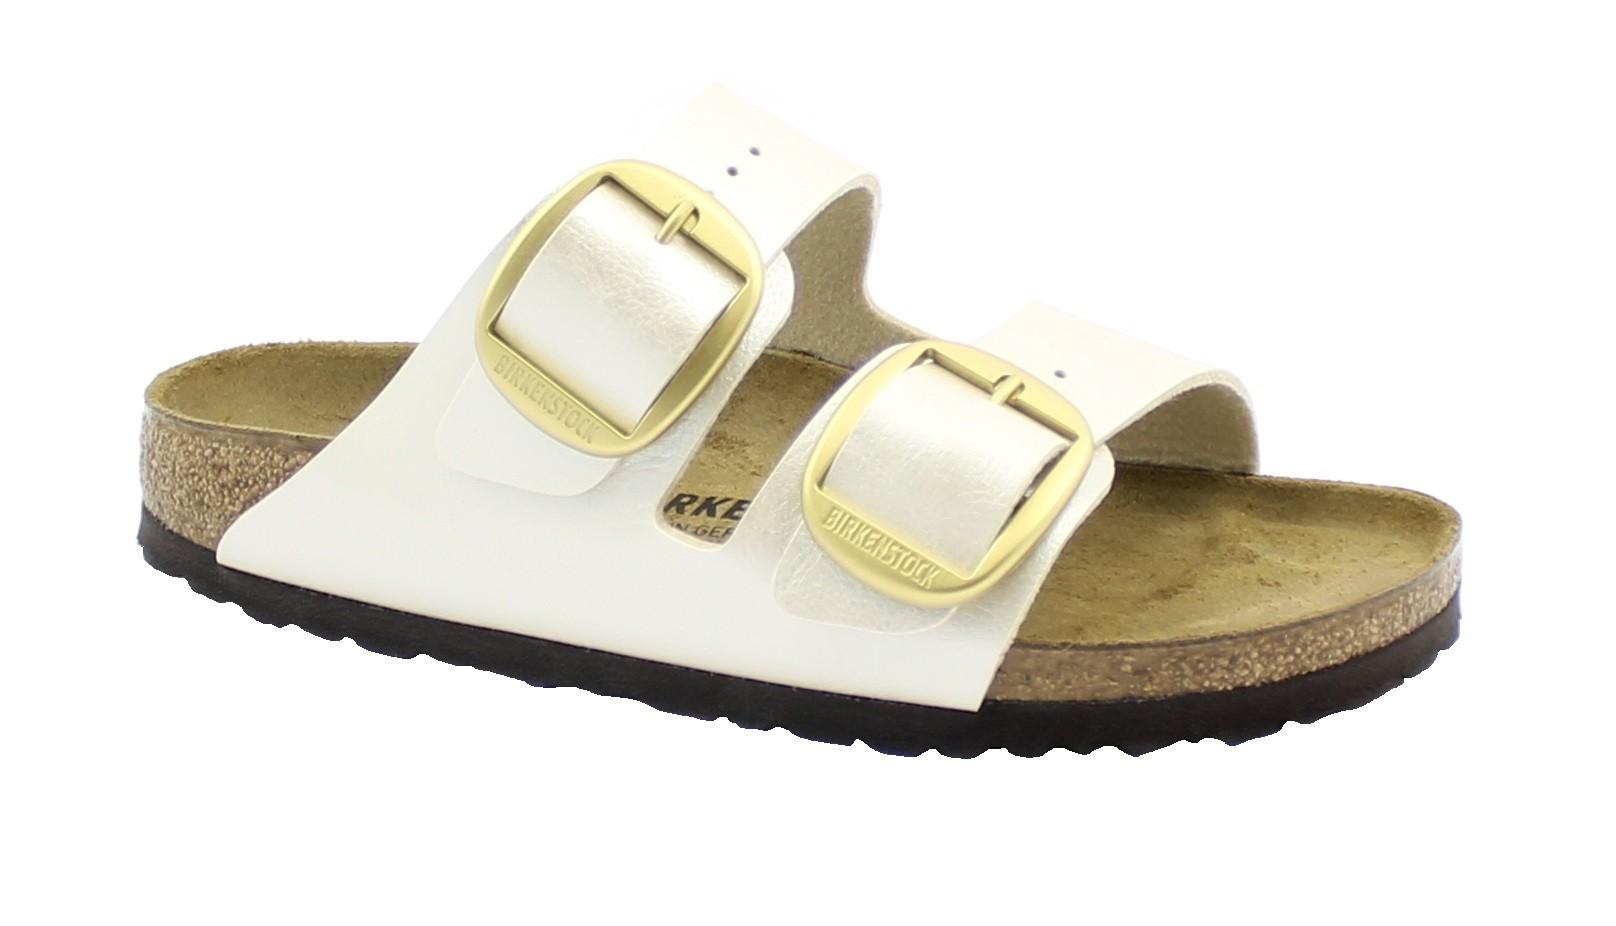 BIRKENSTOCK Arizona BIG BUCKLE 1020021 bianca graceful pearl white ciabatte donna fibbie